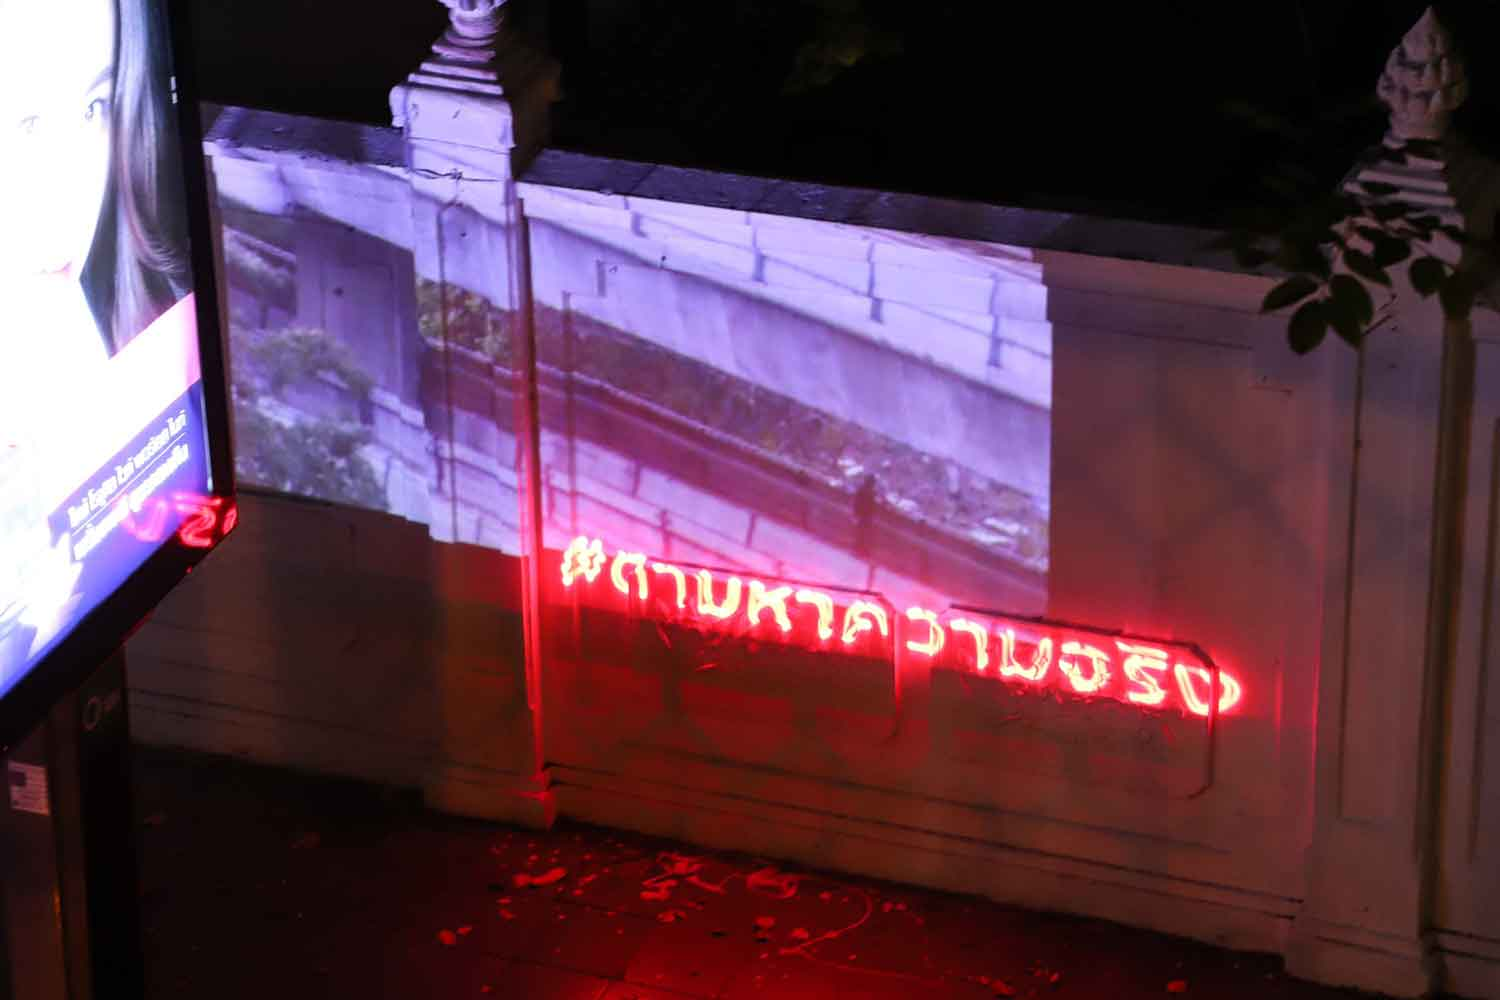 This image from the Progressive Movement shows a laser message in Thai meaning